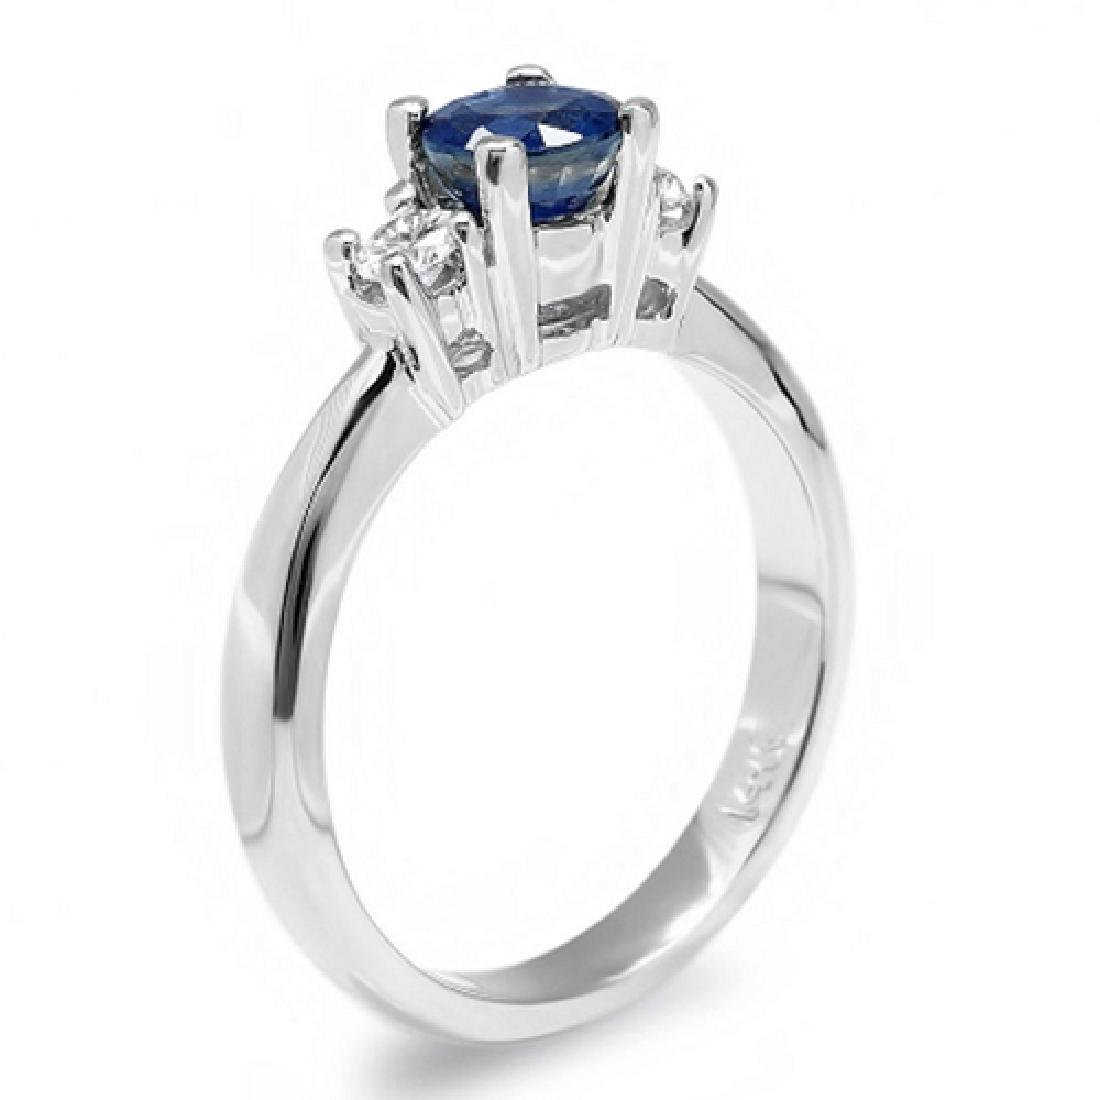 1.18 Carat Natural Sapphire 18K Solid White Gold - 2